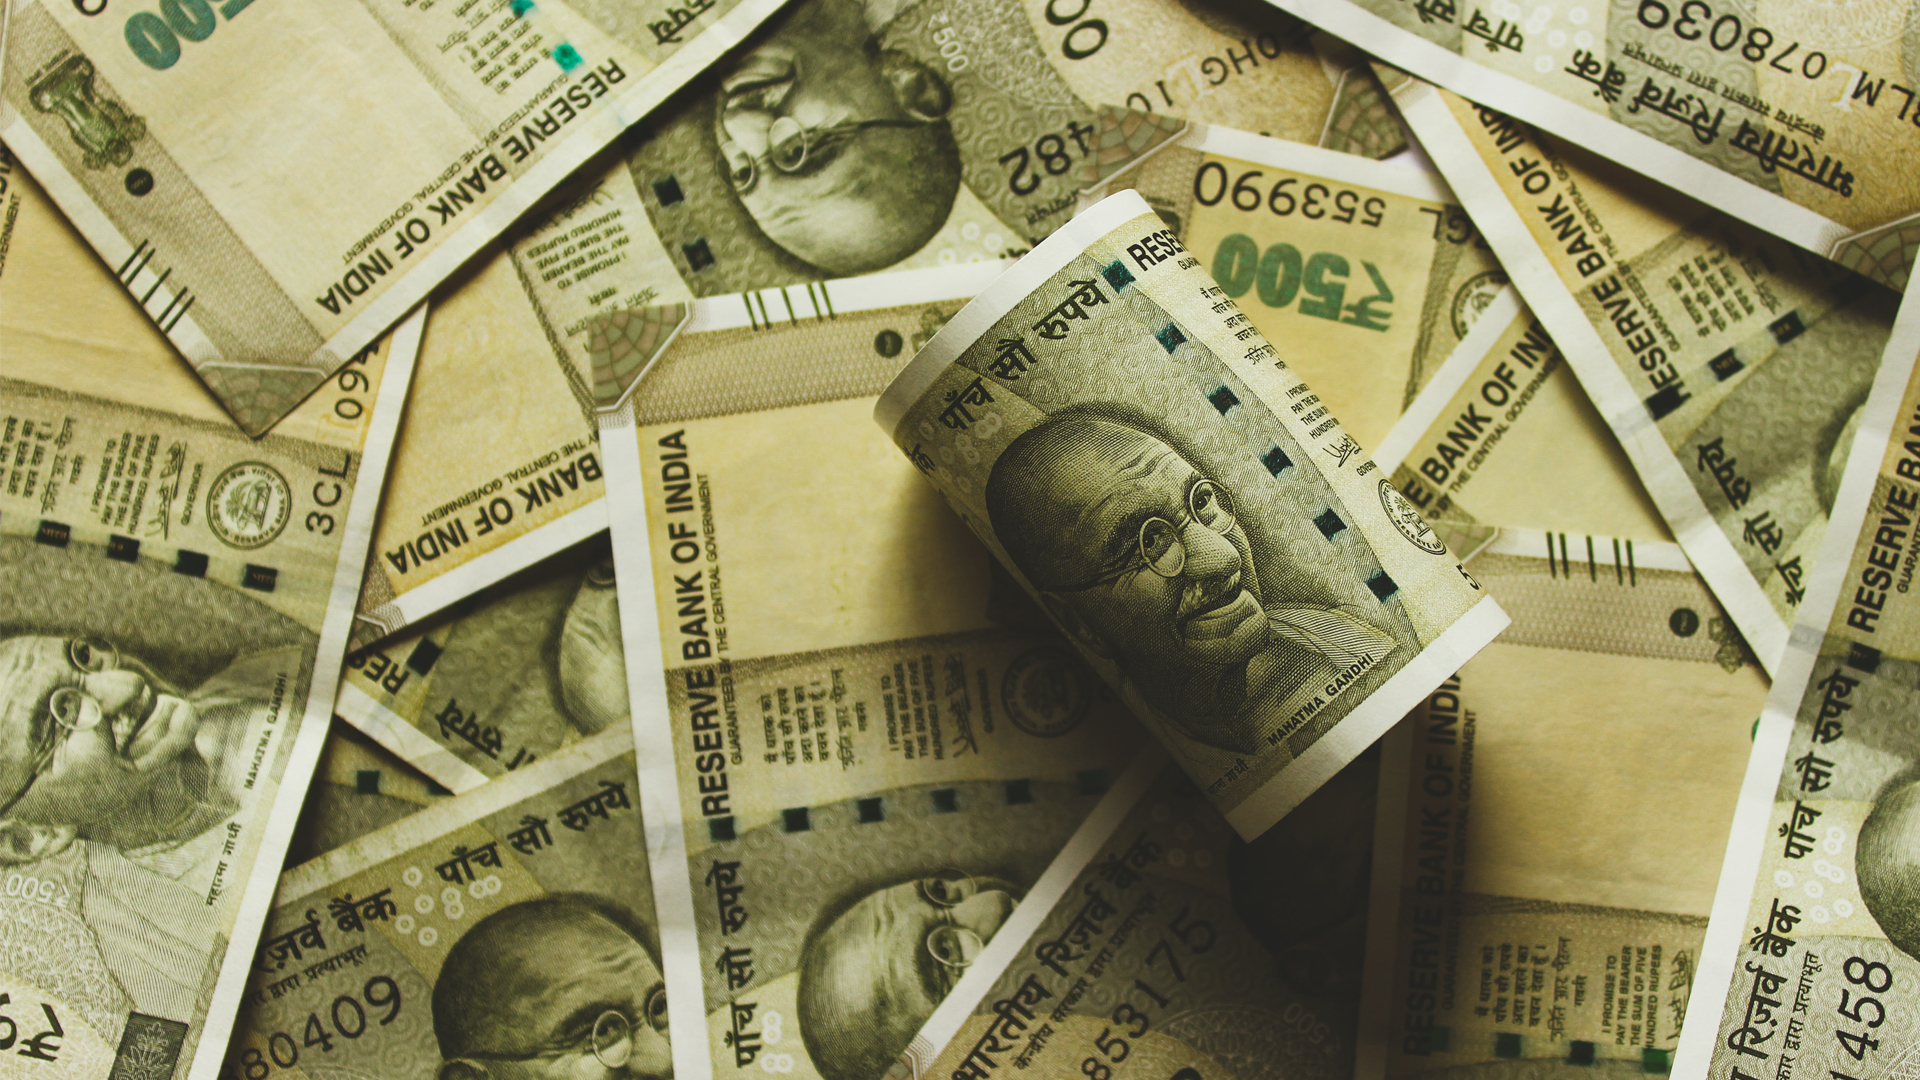 Pilot Program Aims to Make Remittances To India Easier, Cheaper